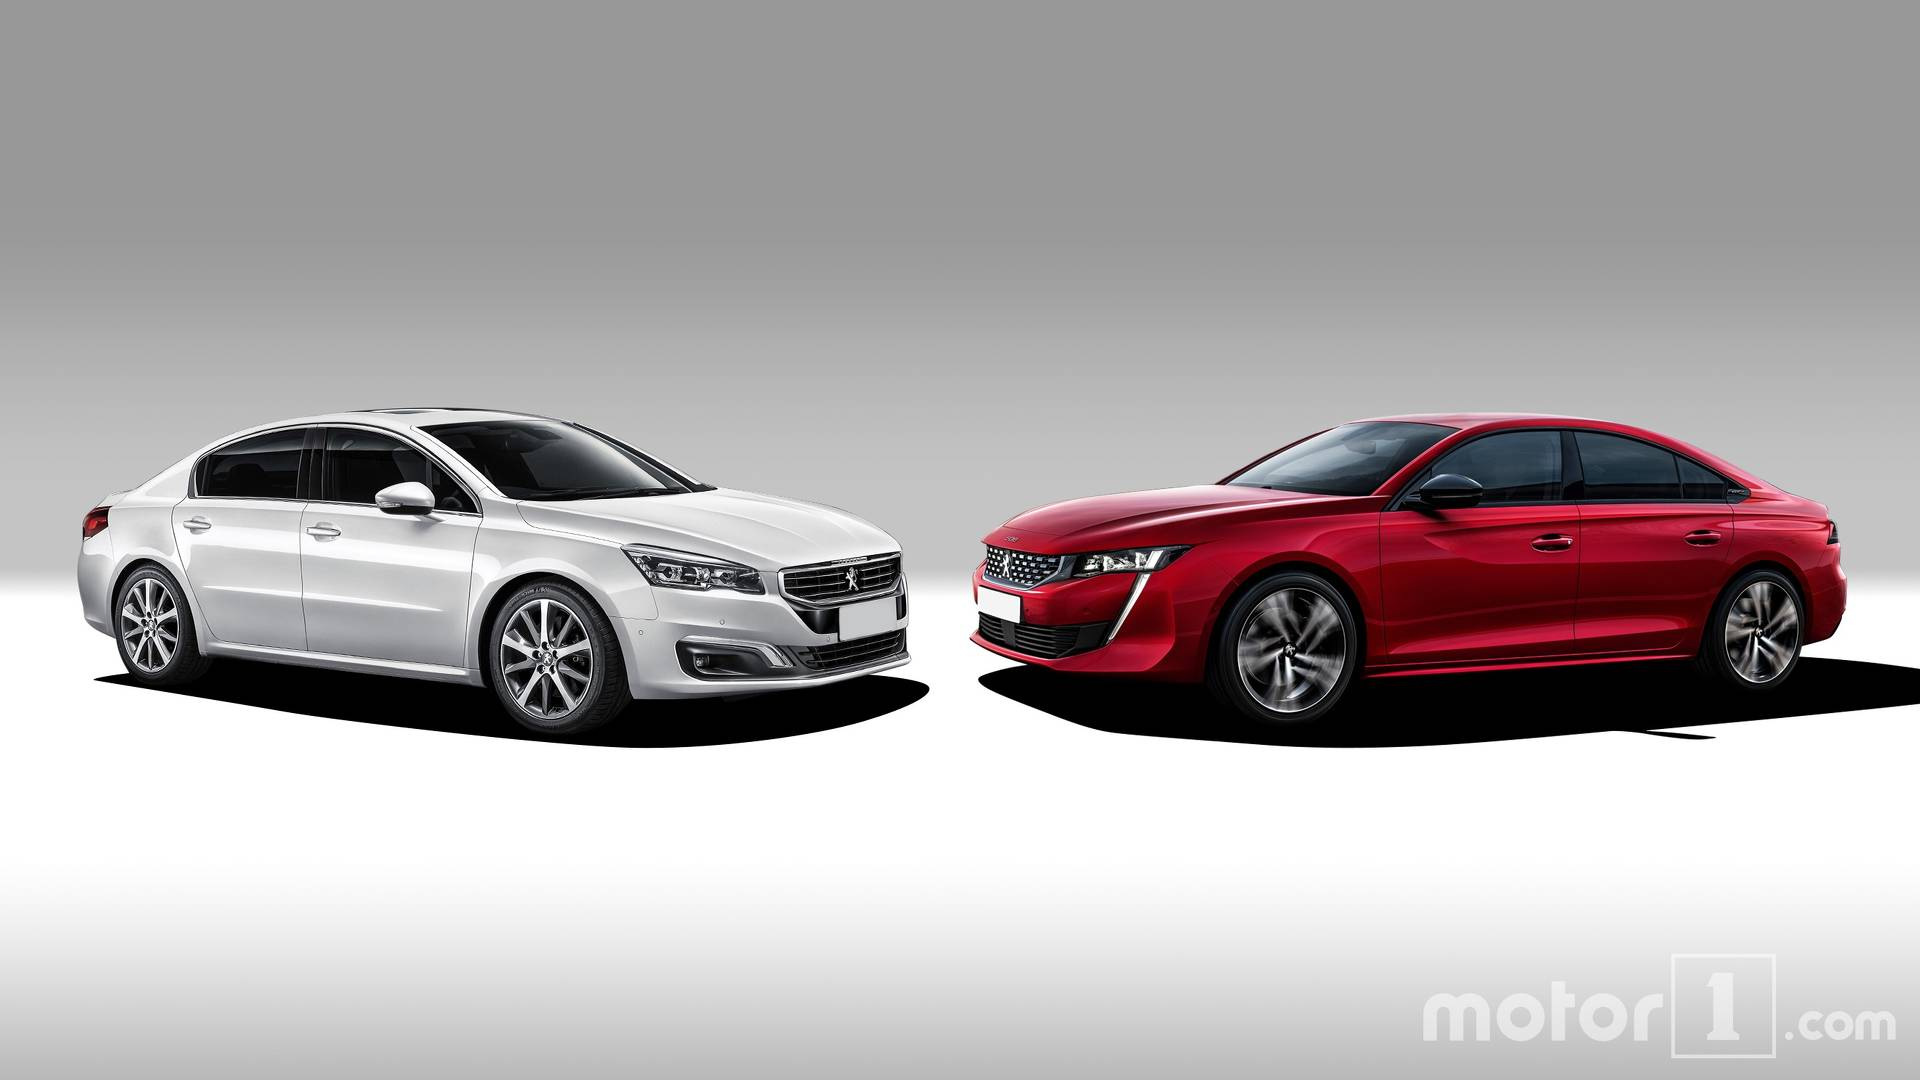 Old And New Peugeot 508 Side By Side